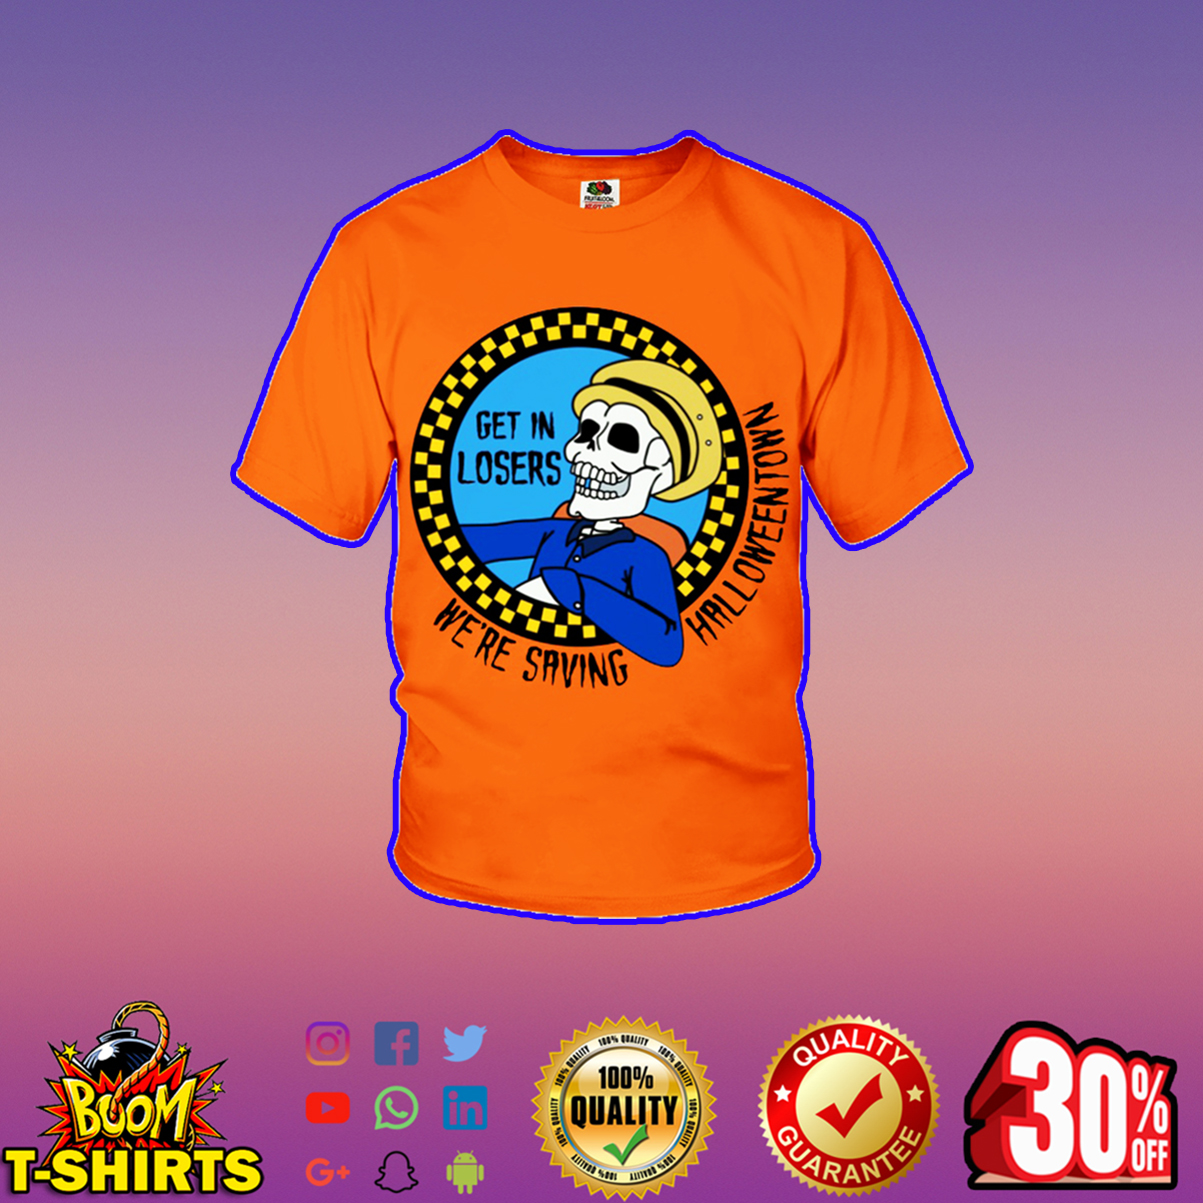 Get in losers we're saving halloweentown youth t-shirt